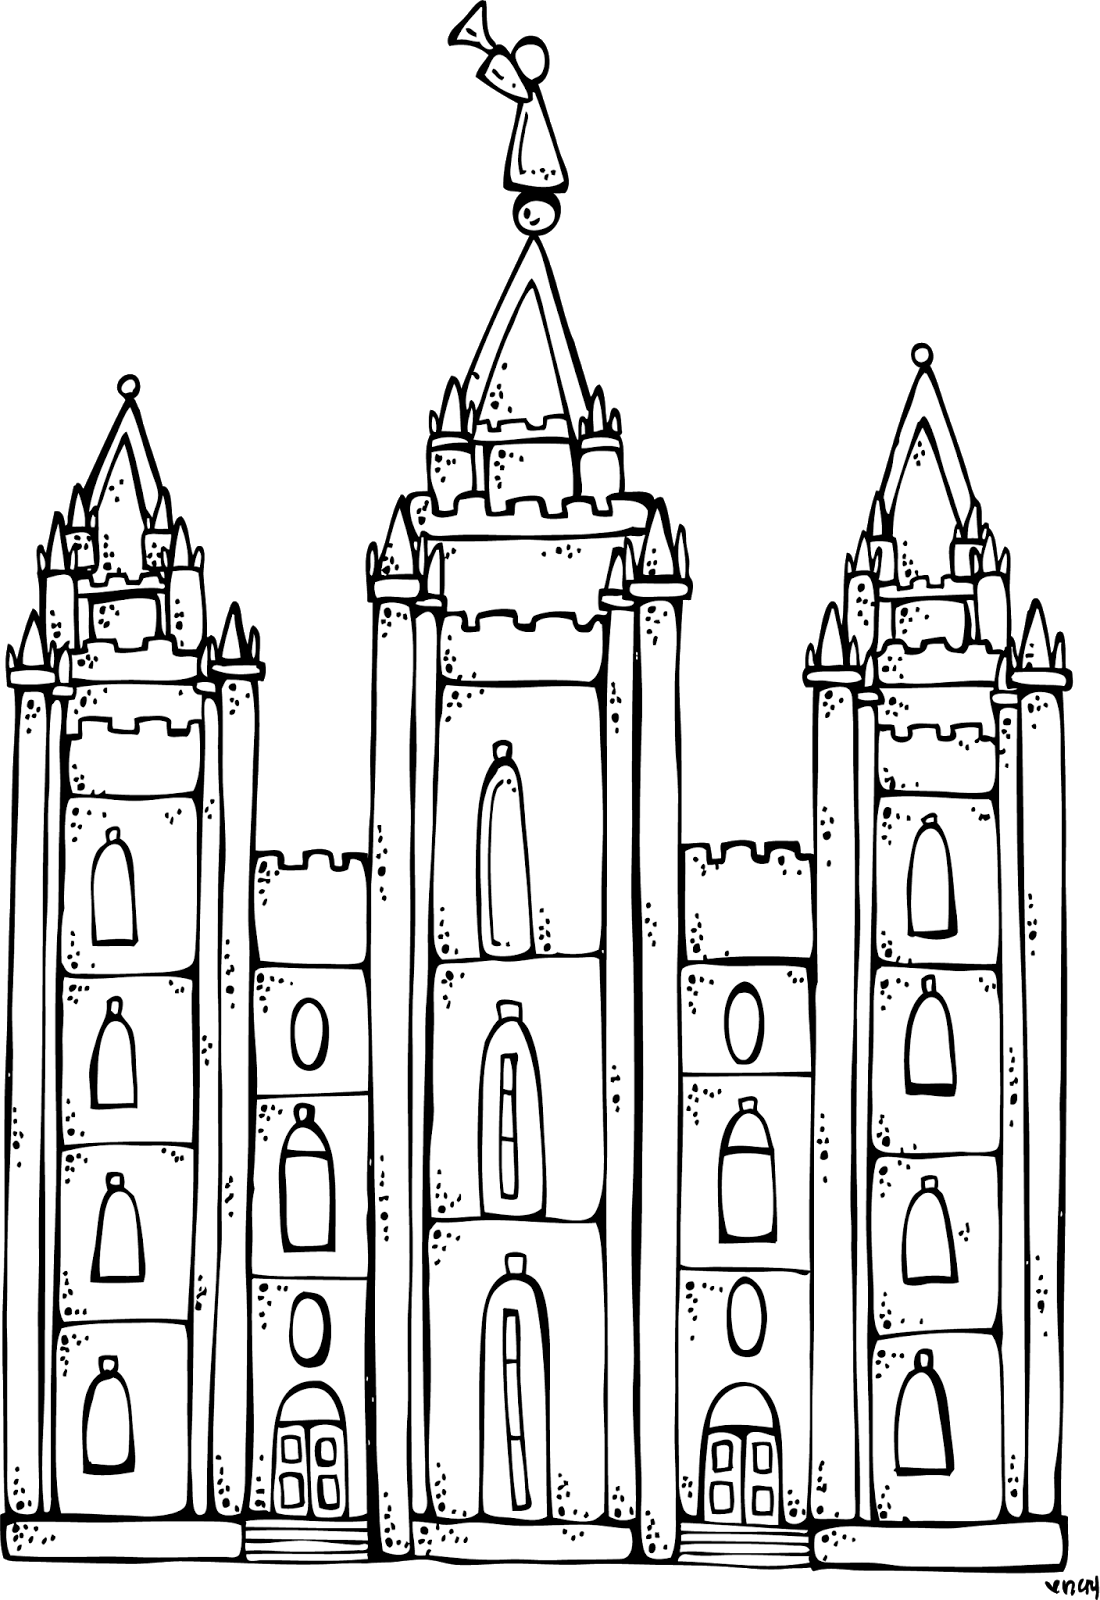 Melonheadz LDS illustrating: I Love to see the temple